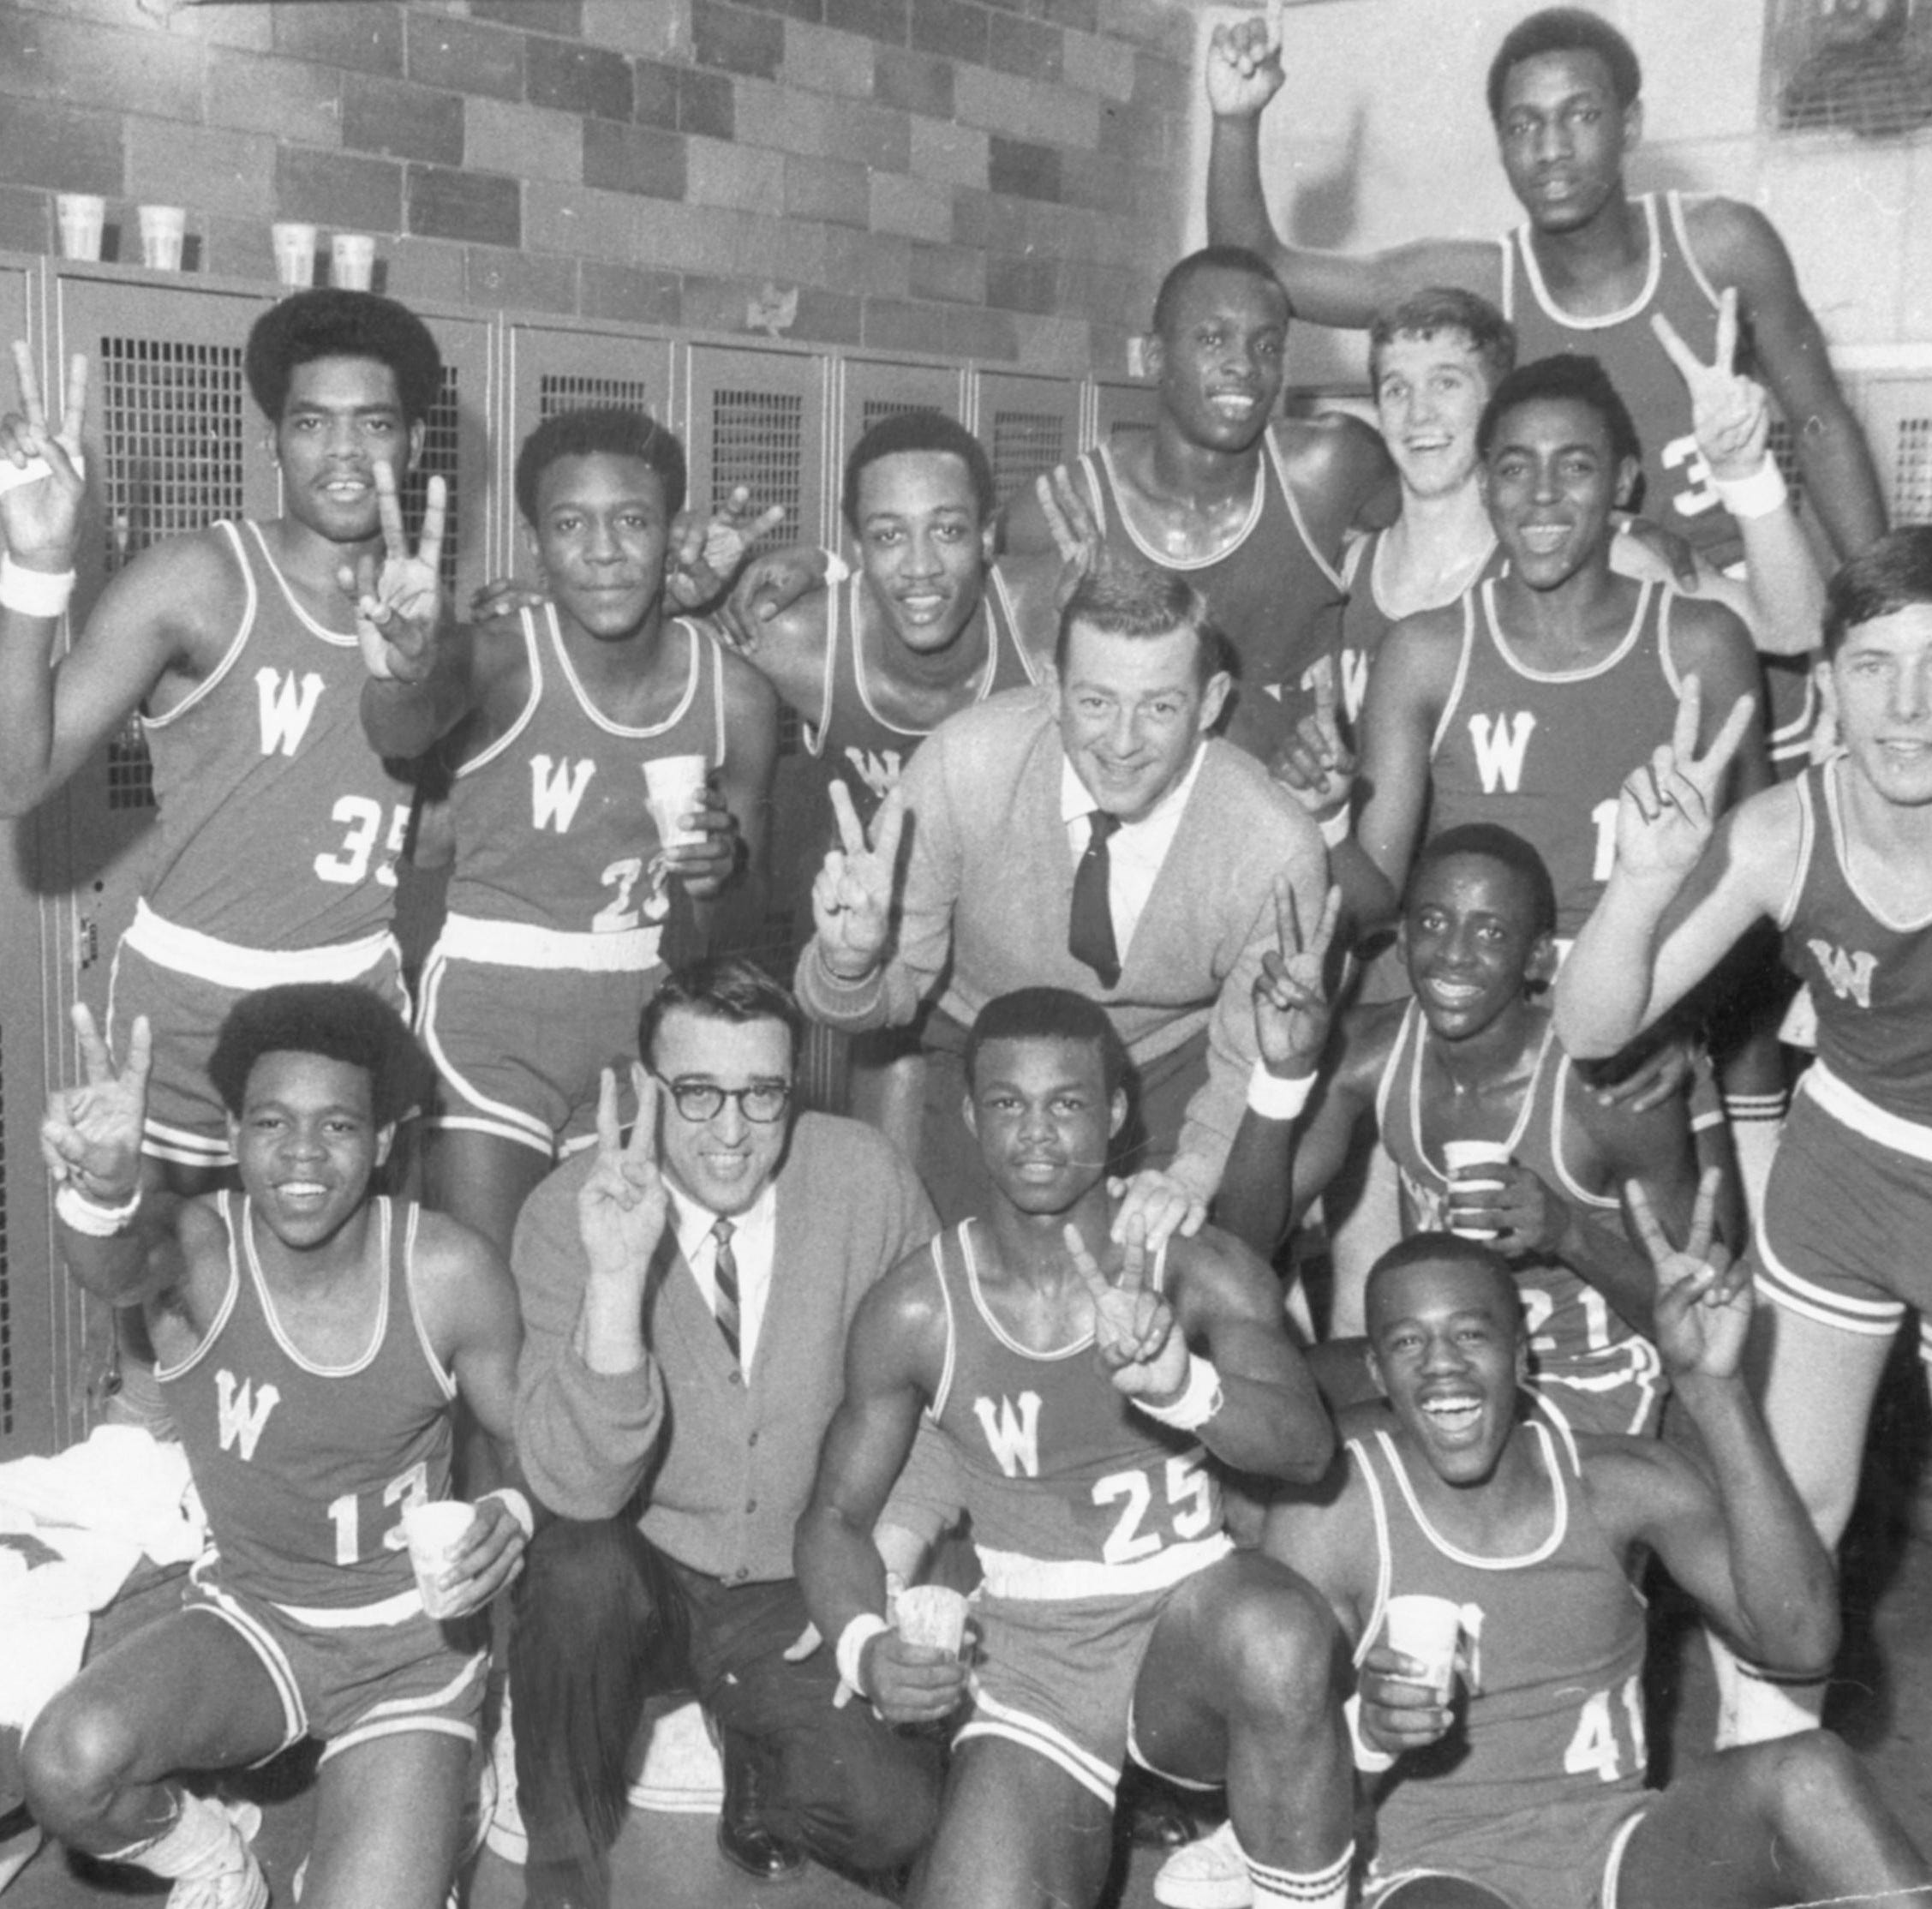 50 years later: Washington Continentals remain greatest Indiana high school basketball team ever